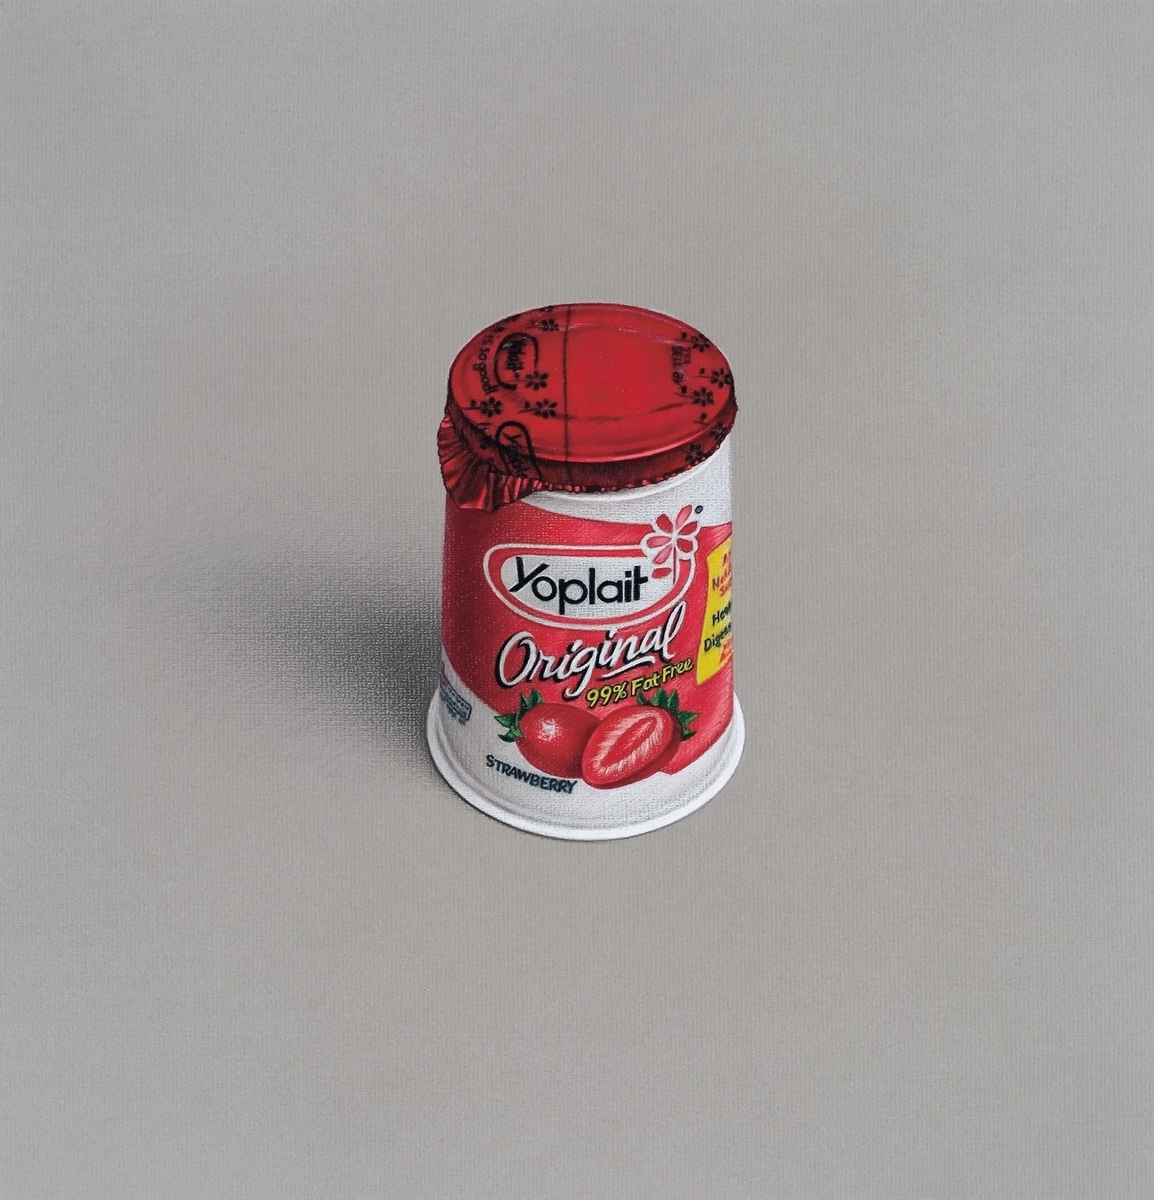 Mathew Cerletty Yoplait, 2007 colored pencil and gouache on paper 35,56 x 33,65 cm